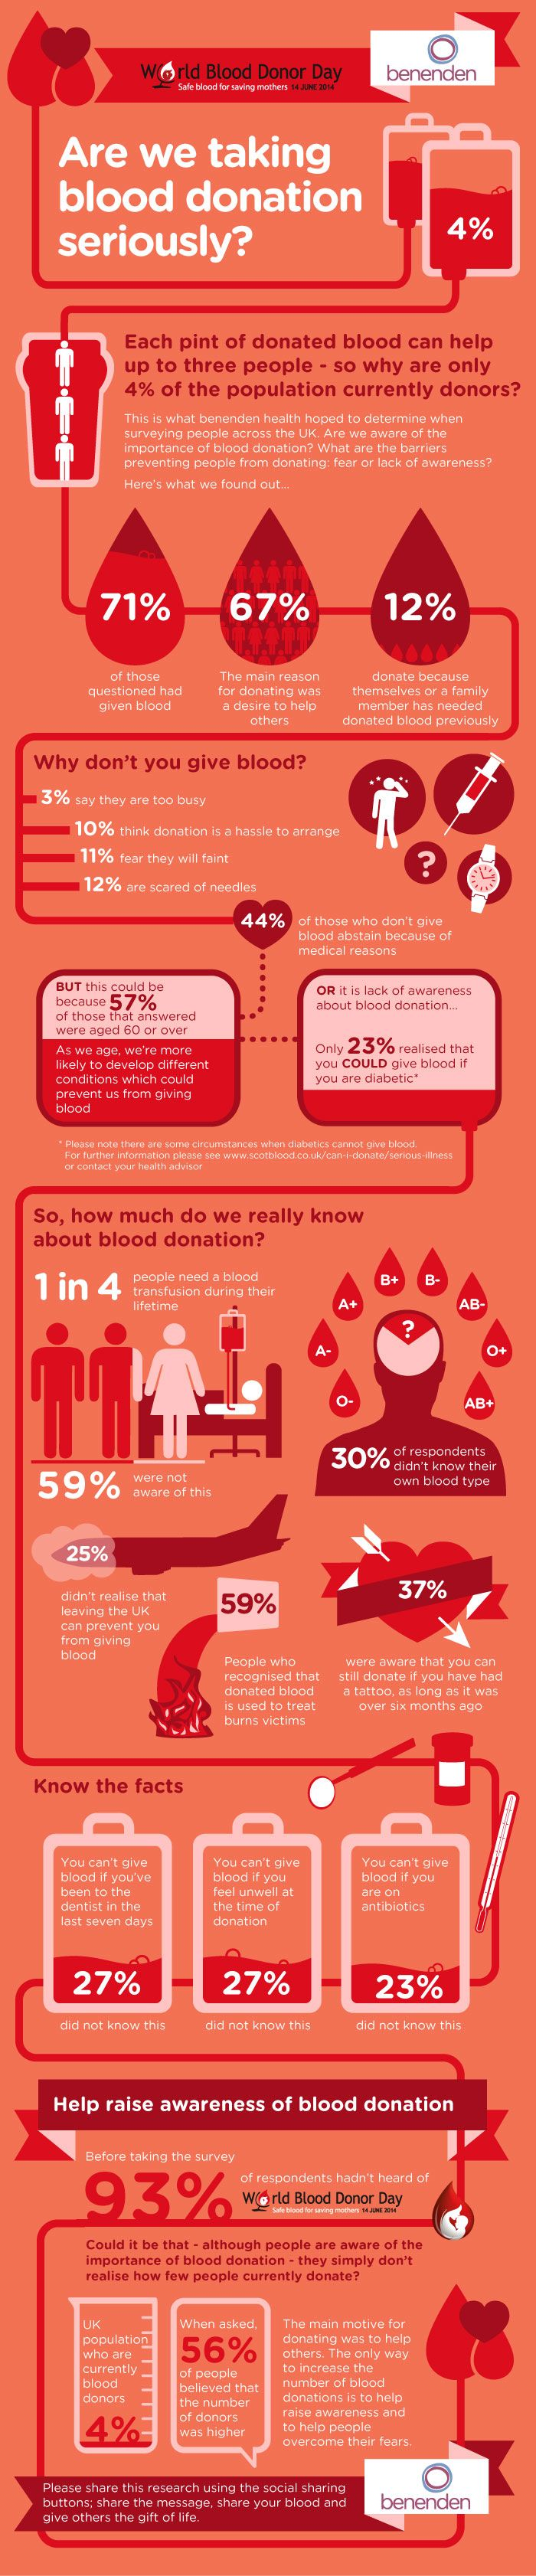 Blood donation infogrpahic Benenden